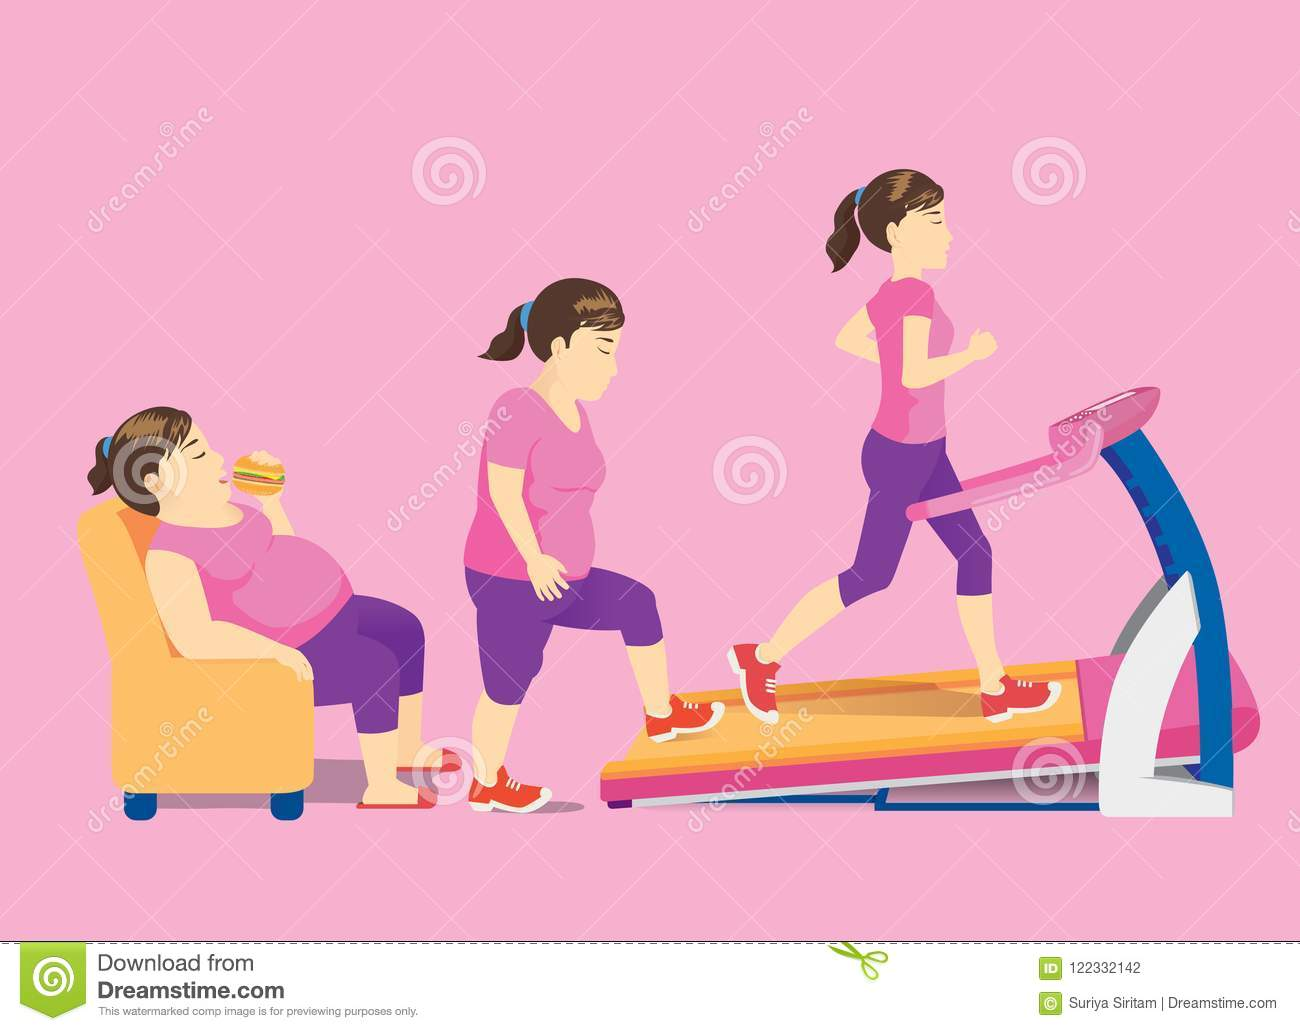 Sofa Workout Fat Woman On Sofa Change Her Body With Rise Up For Workout Stock